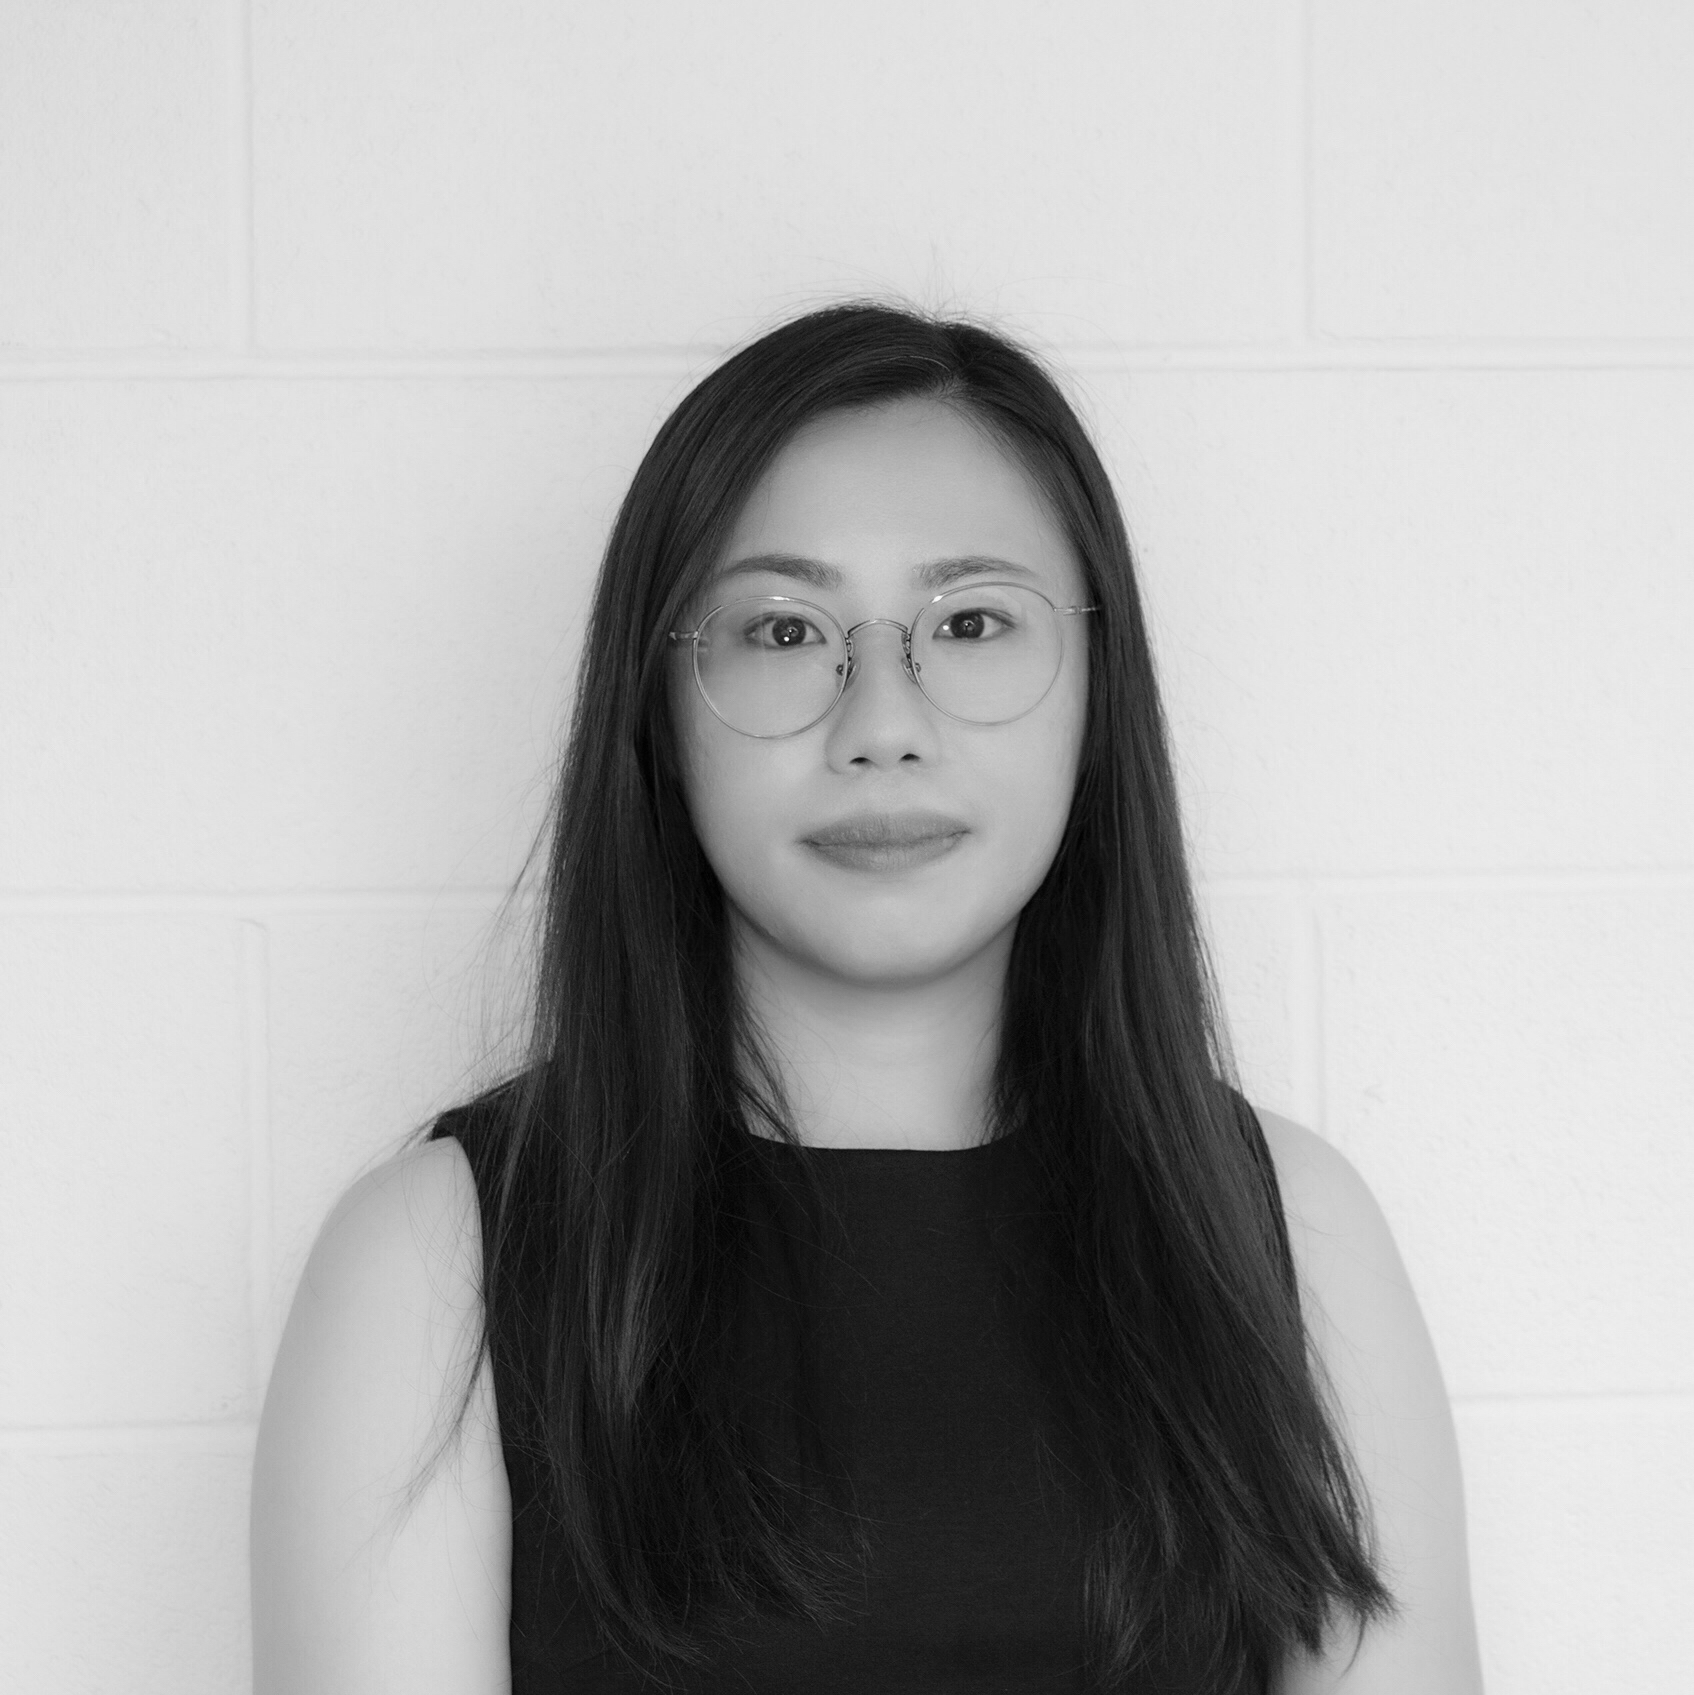 Fei Tao, MLA '17 | Research Assistant | Fall '17